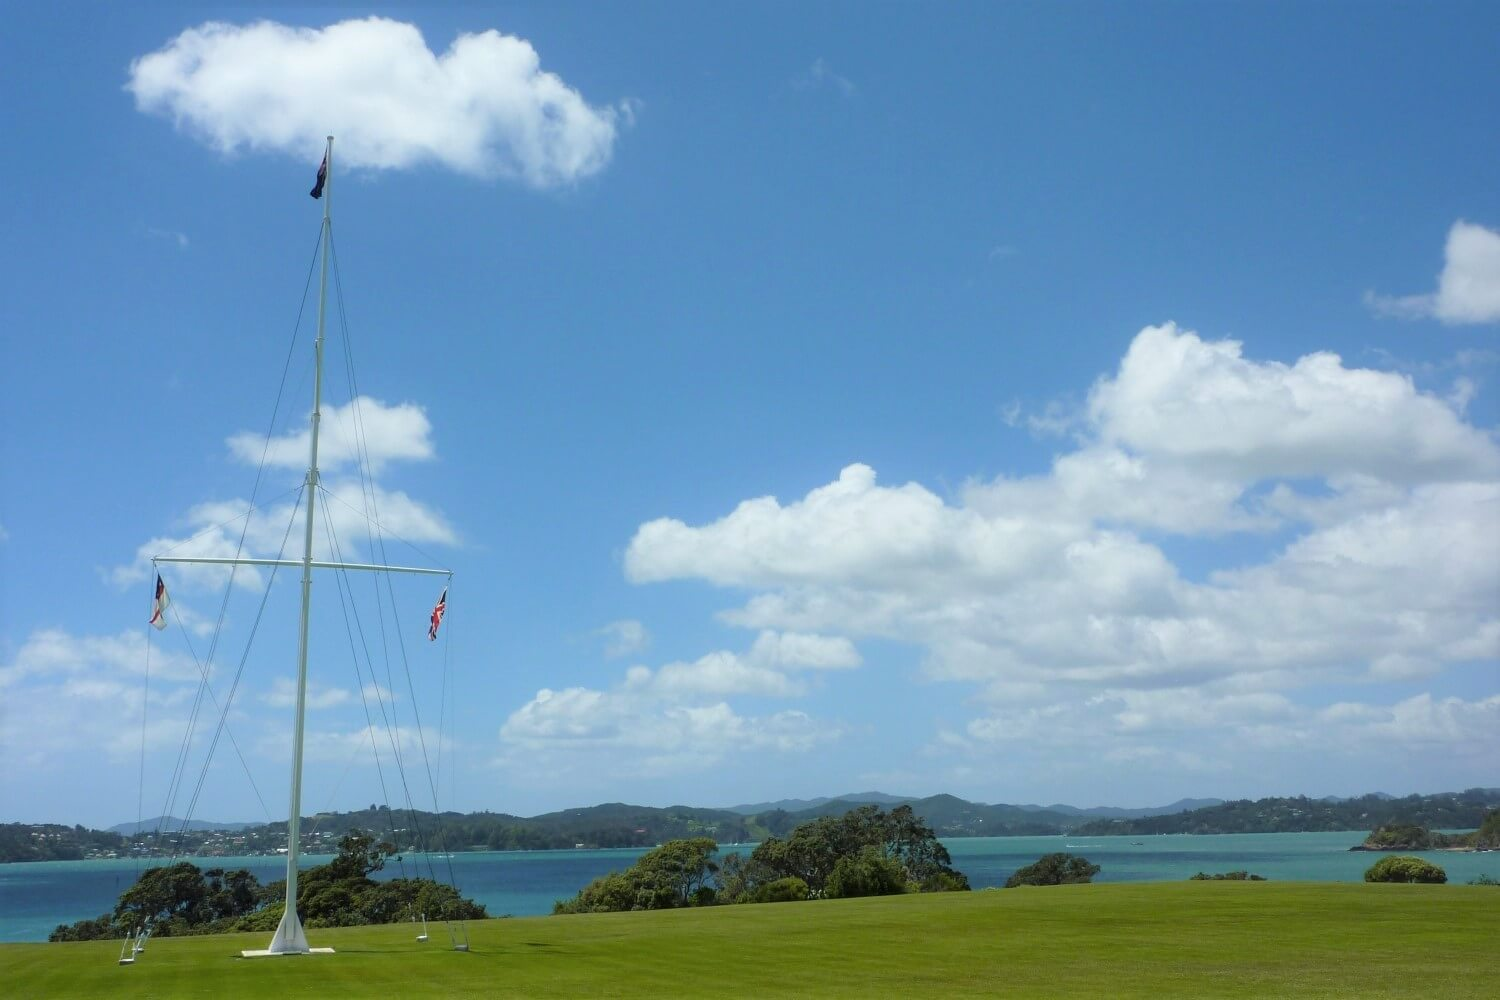 The flags of the Maori, New Zealand and Great Britain